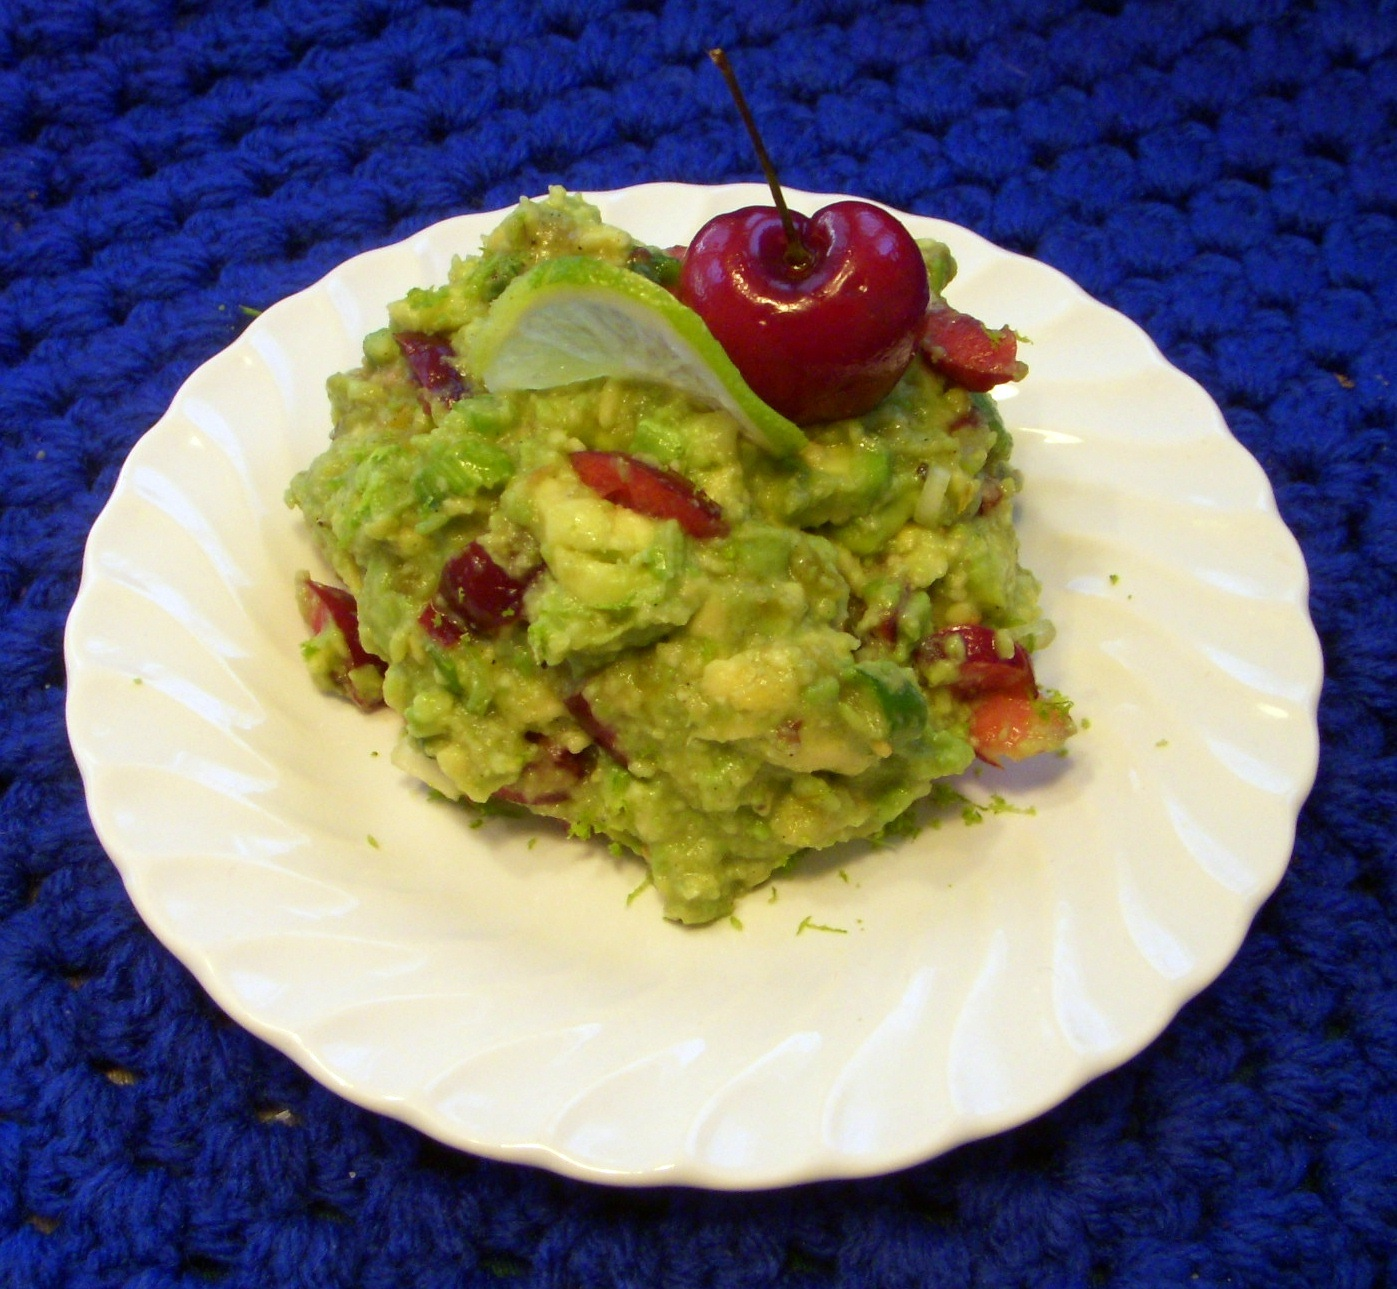 Cherry Lime Guacamole - Honorable Mention. Courtesy of Lori McLain, Texas